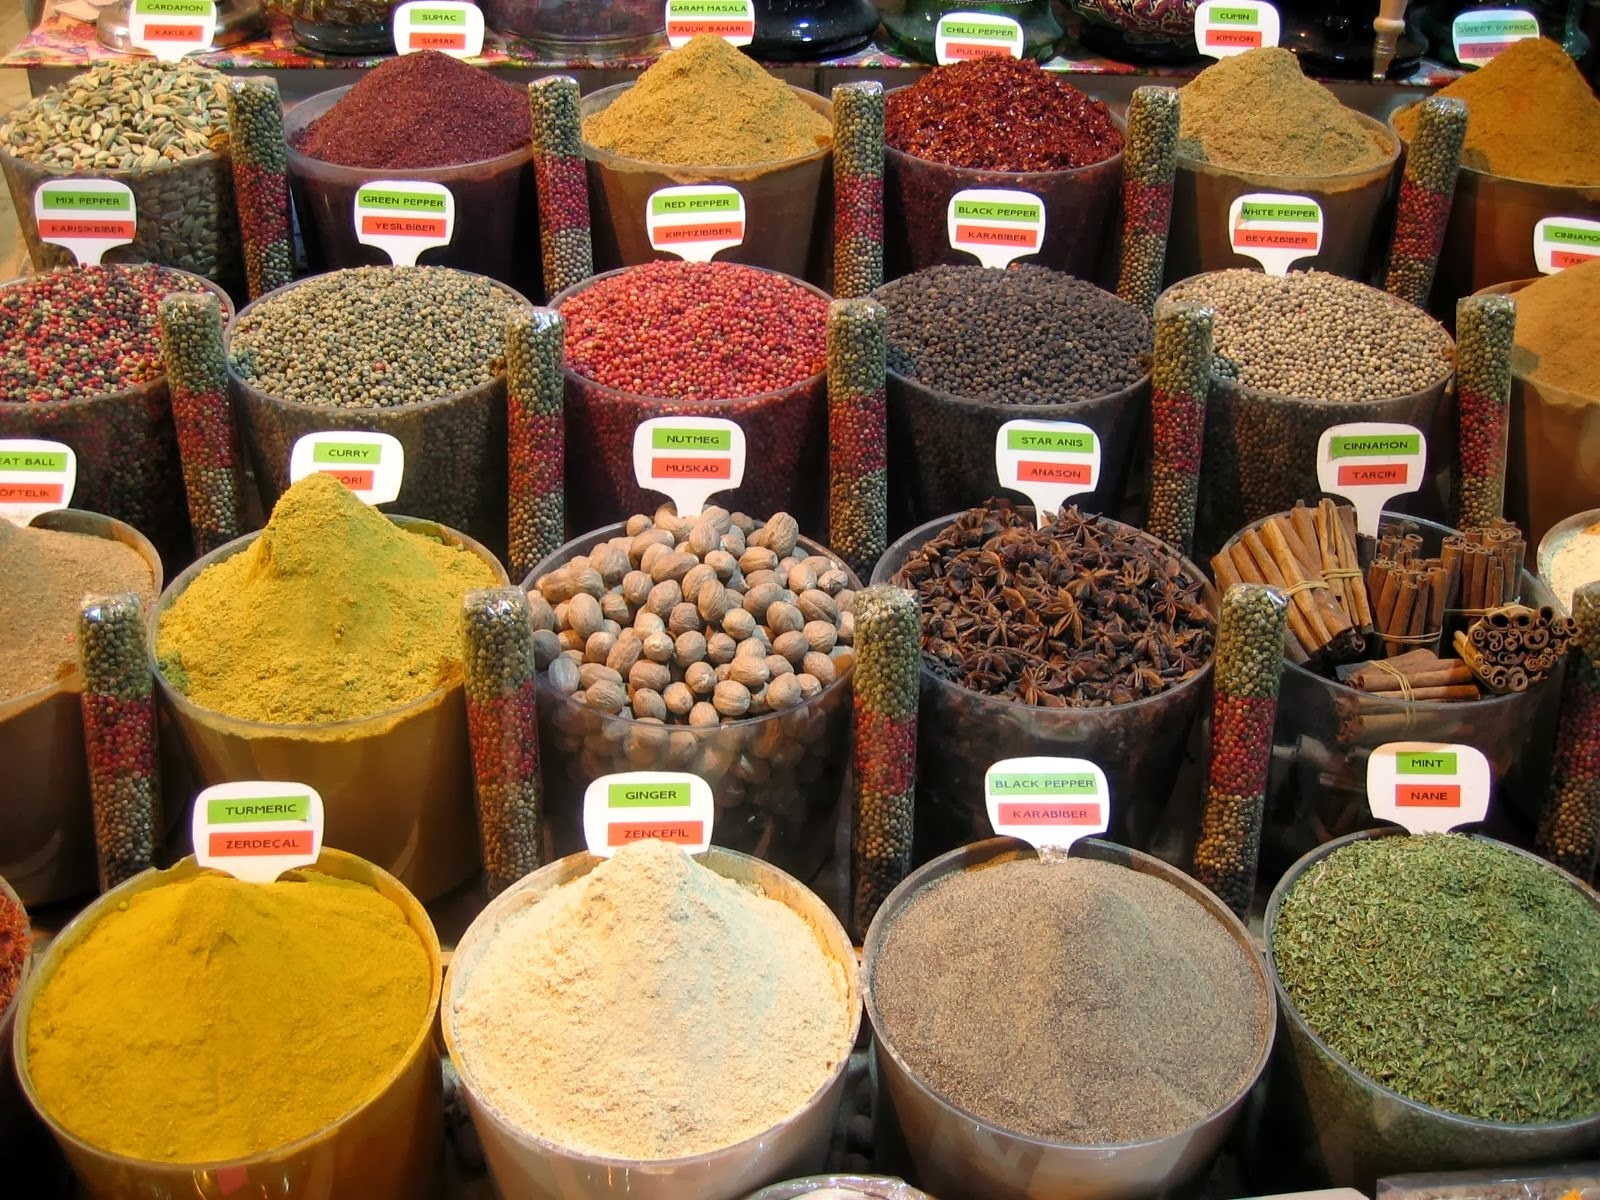 Spices photo by heydrienne WikimediaCommons